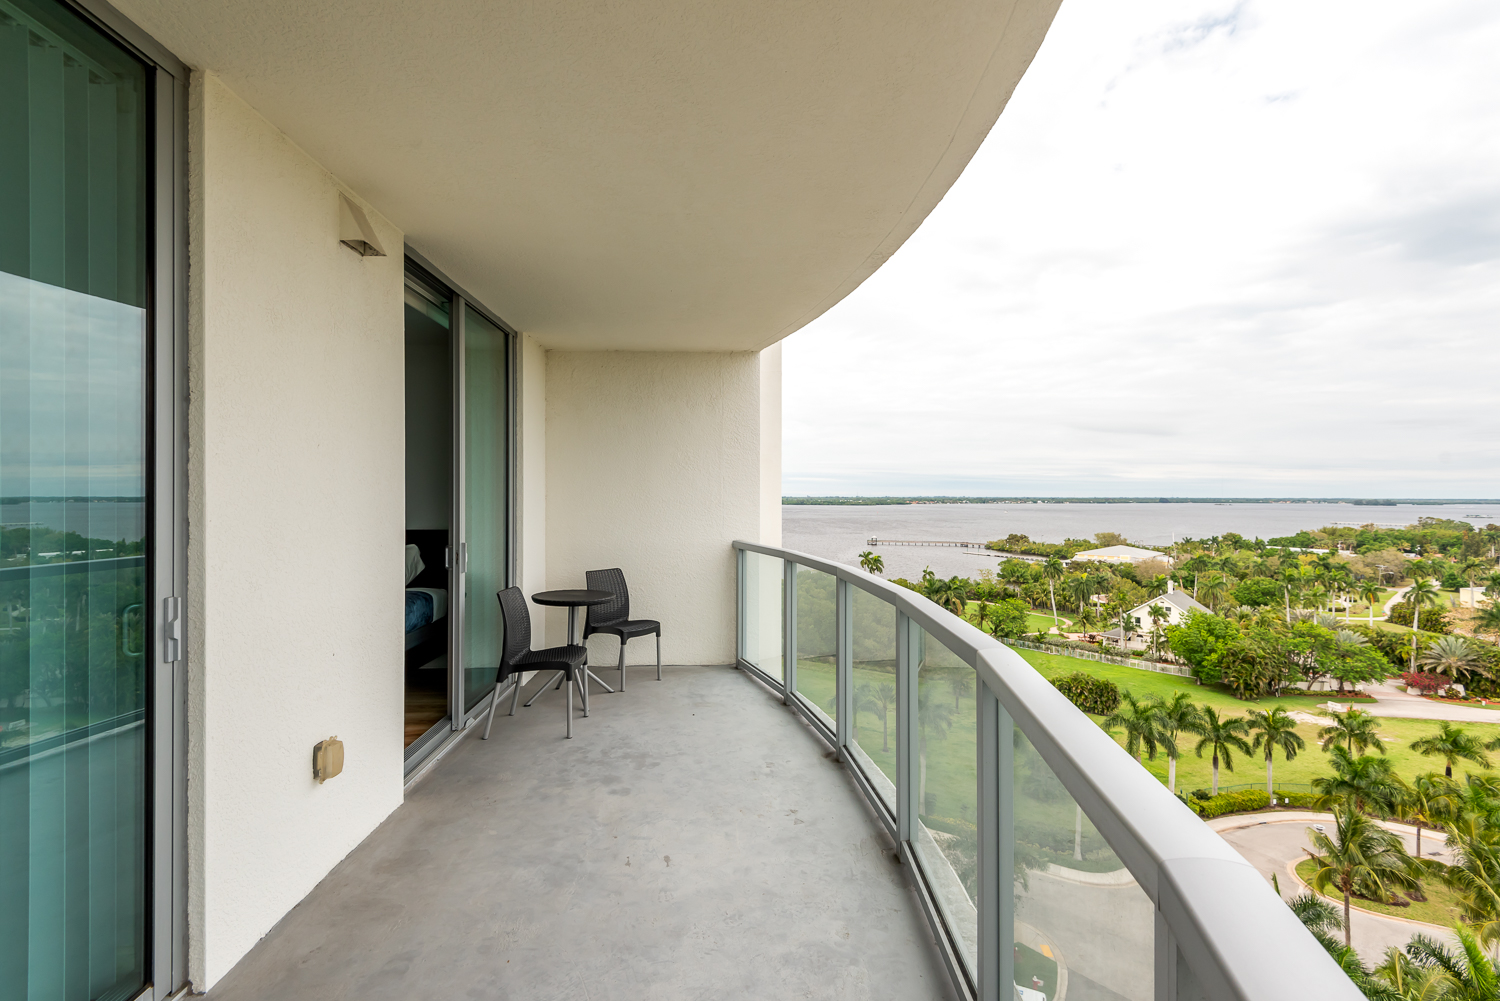 Fort-myers-fl-river-condo-oasis-balcony-alternate-view